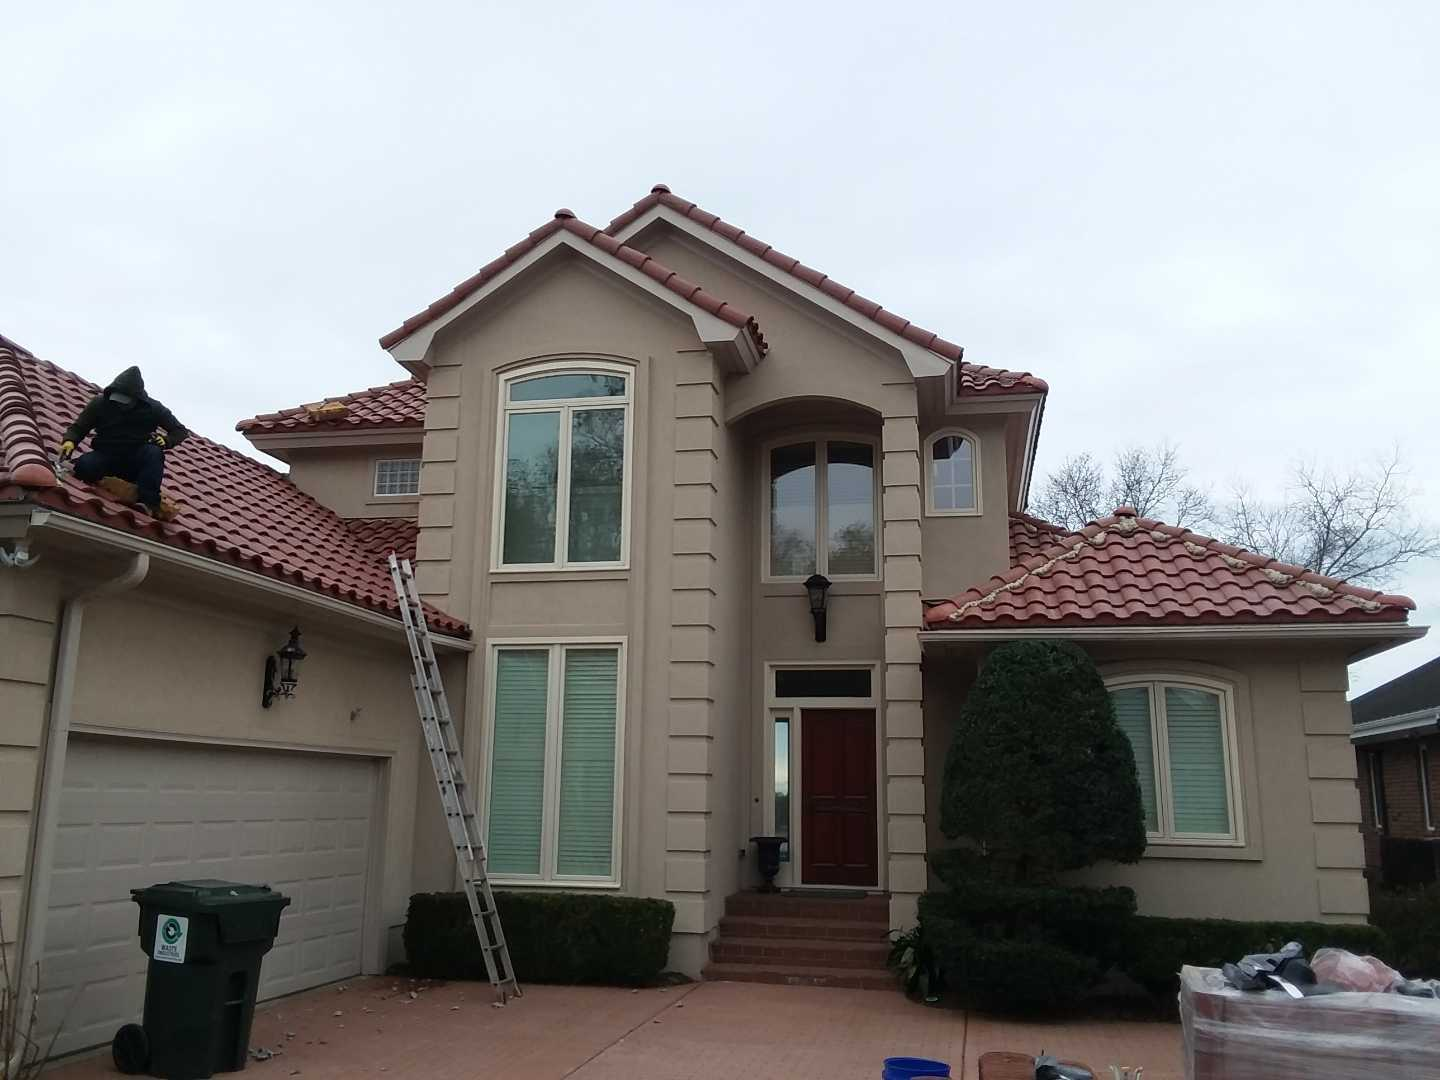 Bales Roofing Boral Roof Tile Installation Landfall Willmington